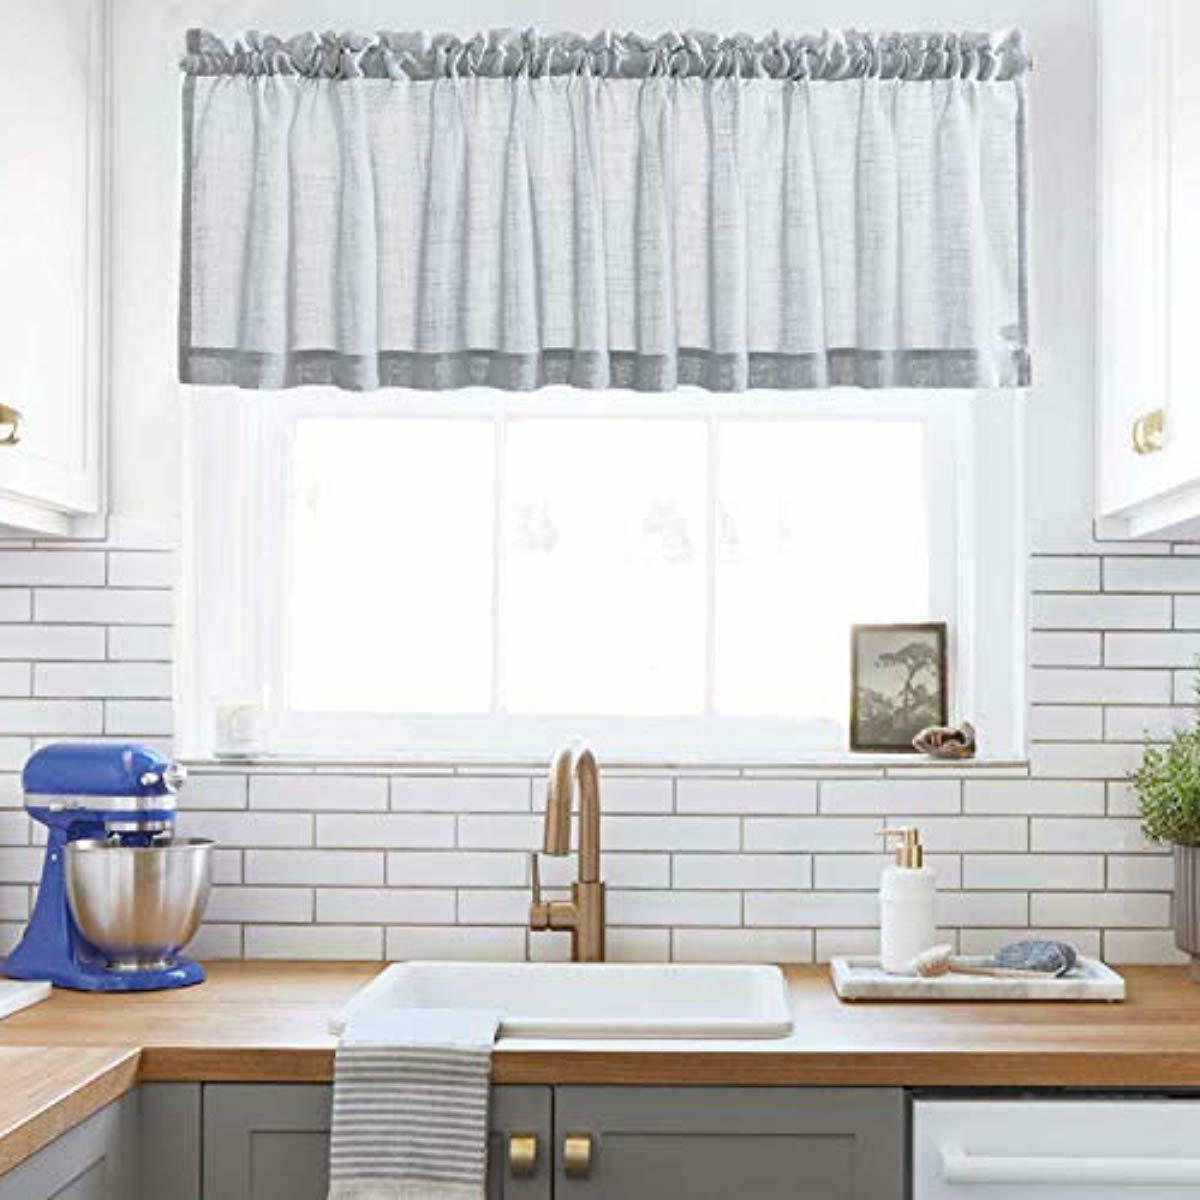 Details About Xwtex Grey Sheer Curtains Valance Semi Sheer Window Curtain  For Kitchen/café For Best And Newest Coffee Drinks Embroidered Window Valances And Tiers (View 12 of 20)